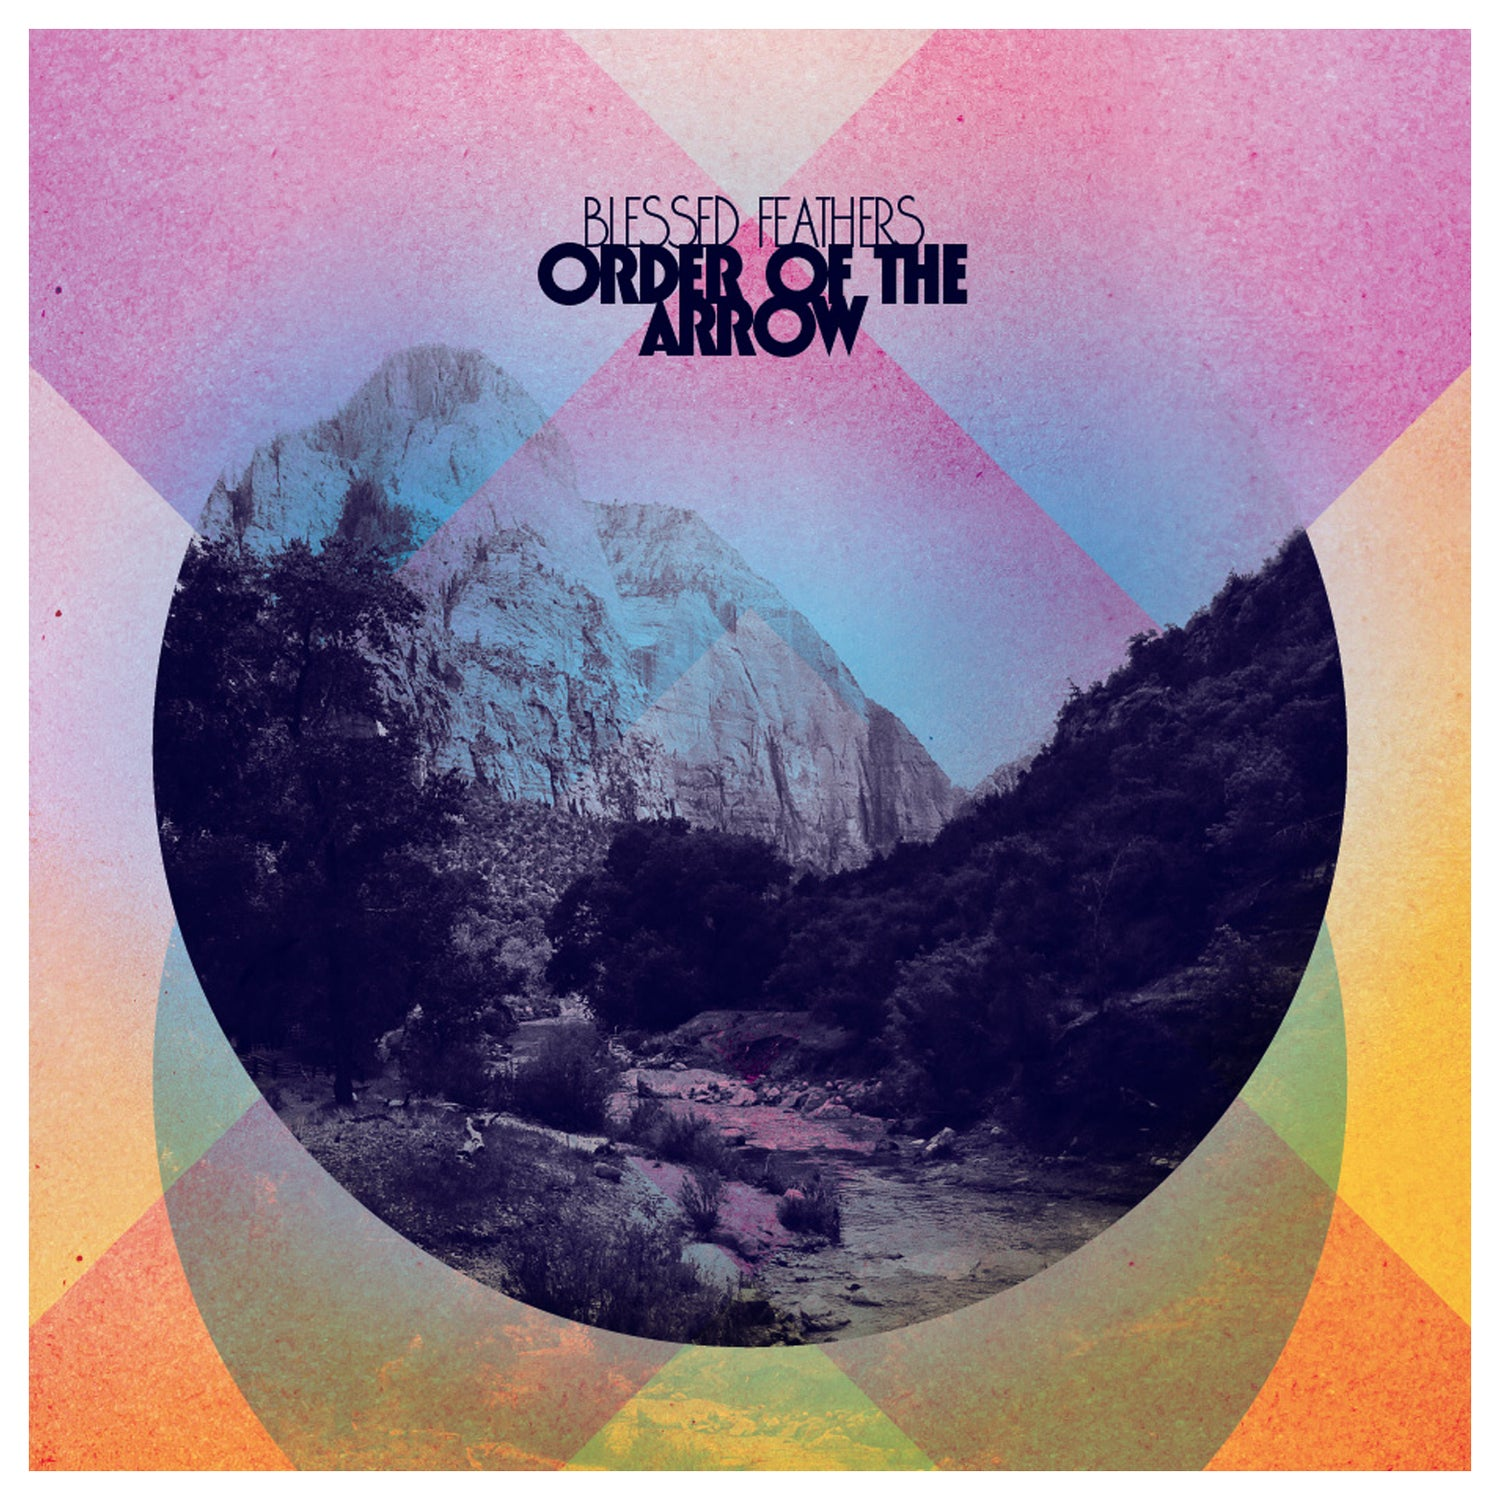 Image of Order of the Arrow LP